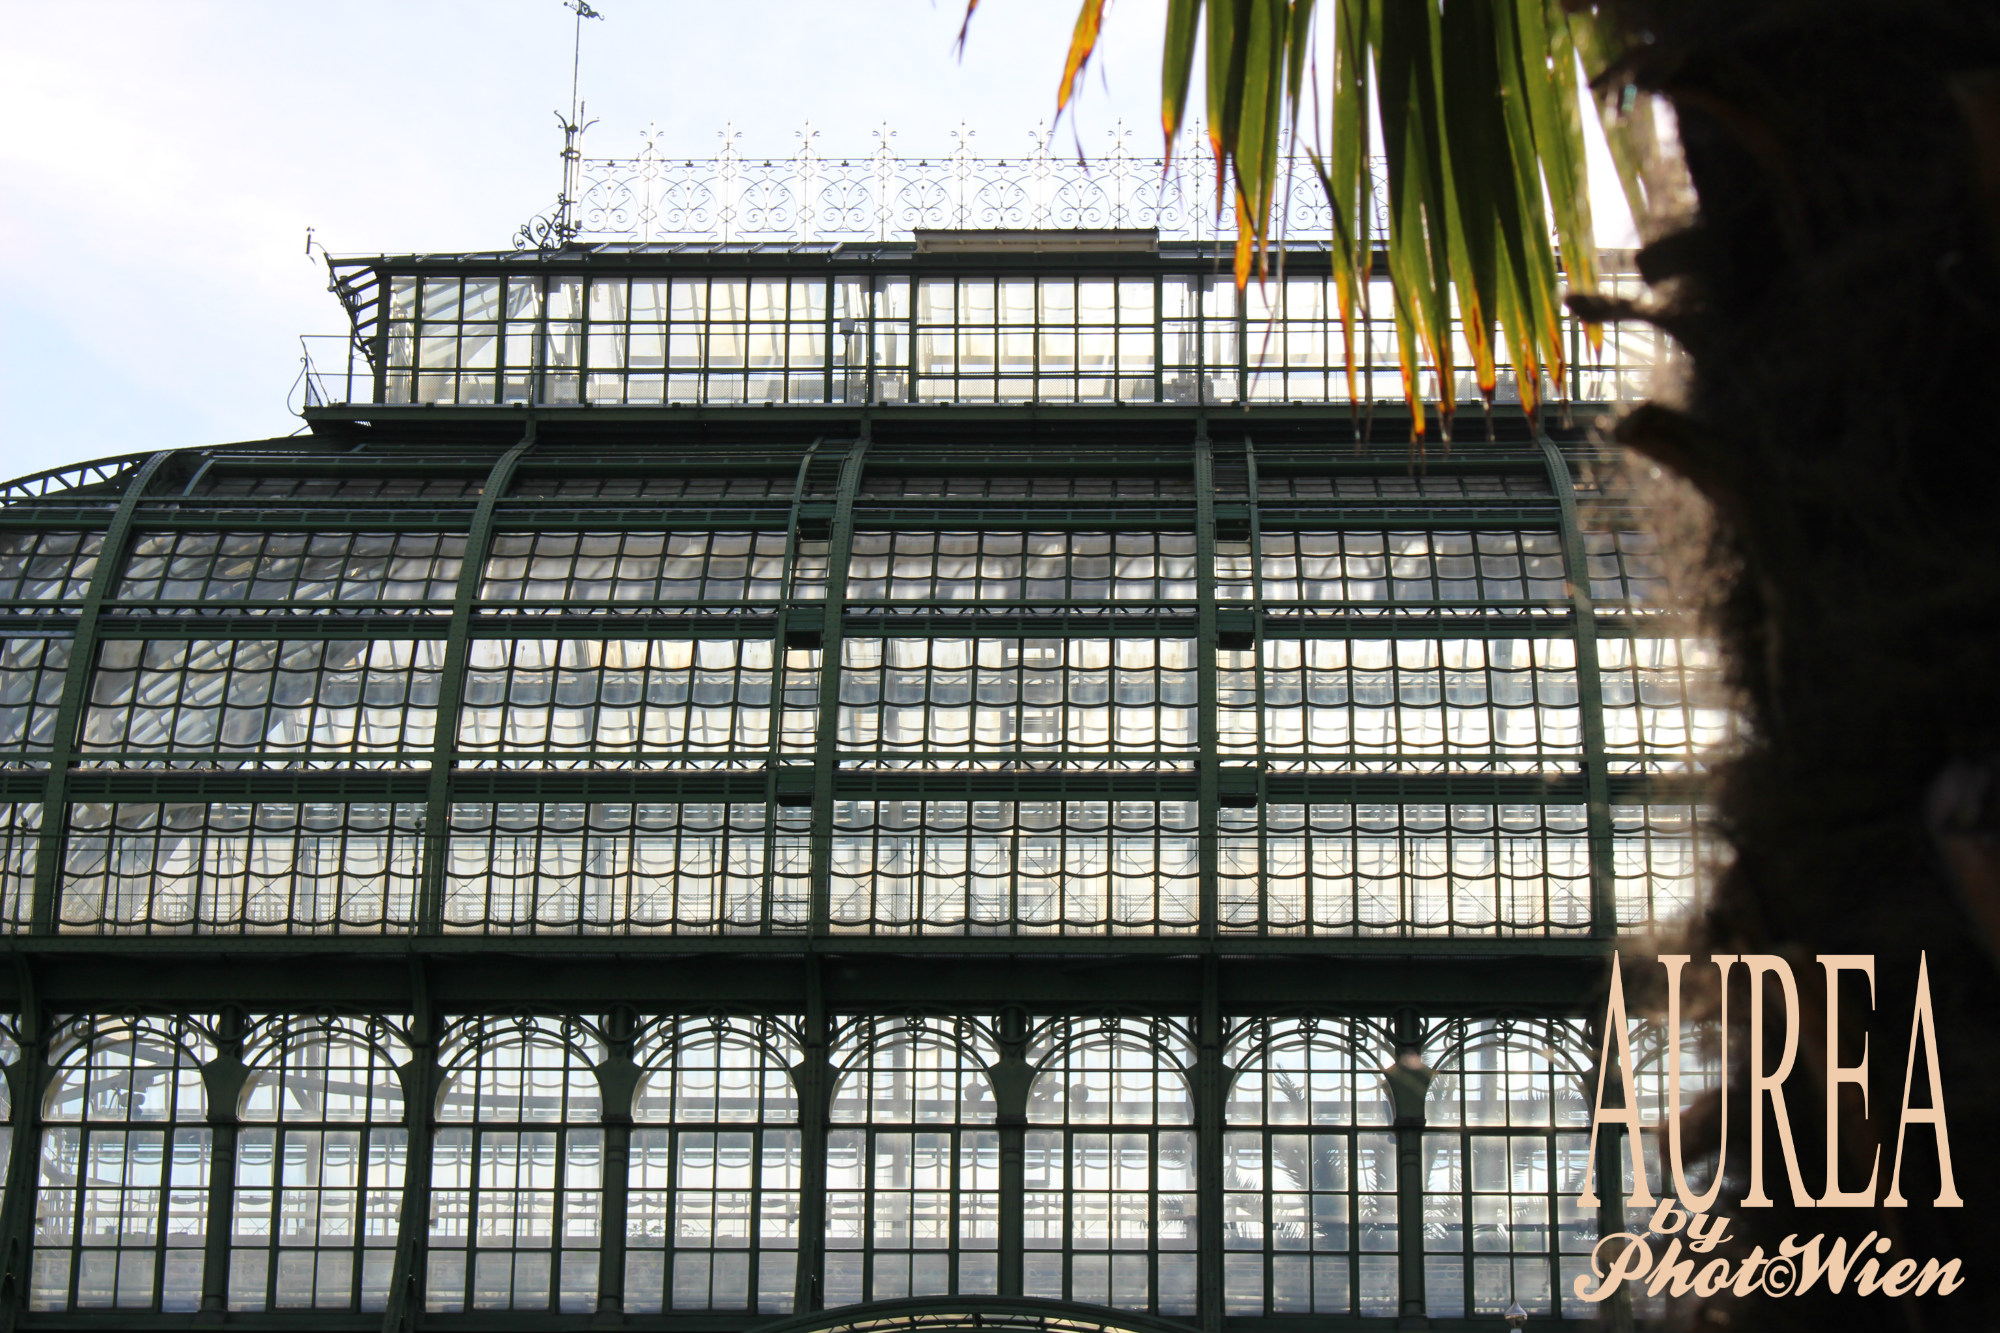 schonbrunn_palmenhaus-with-palm-tree_aurea